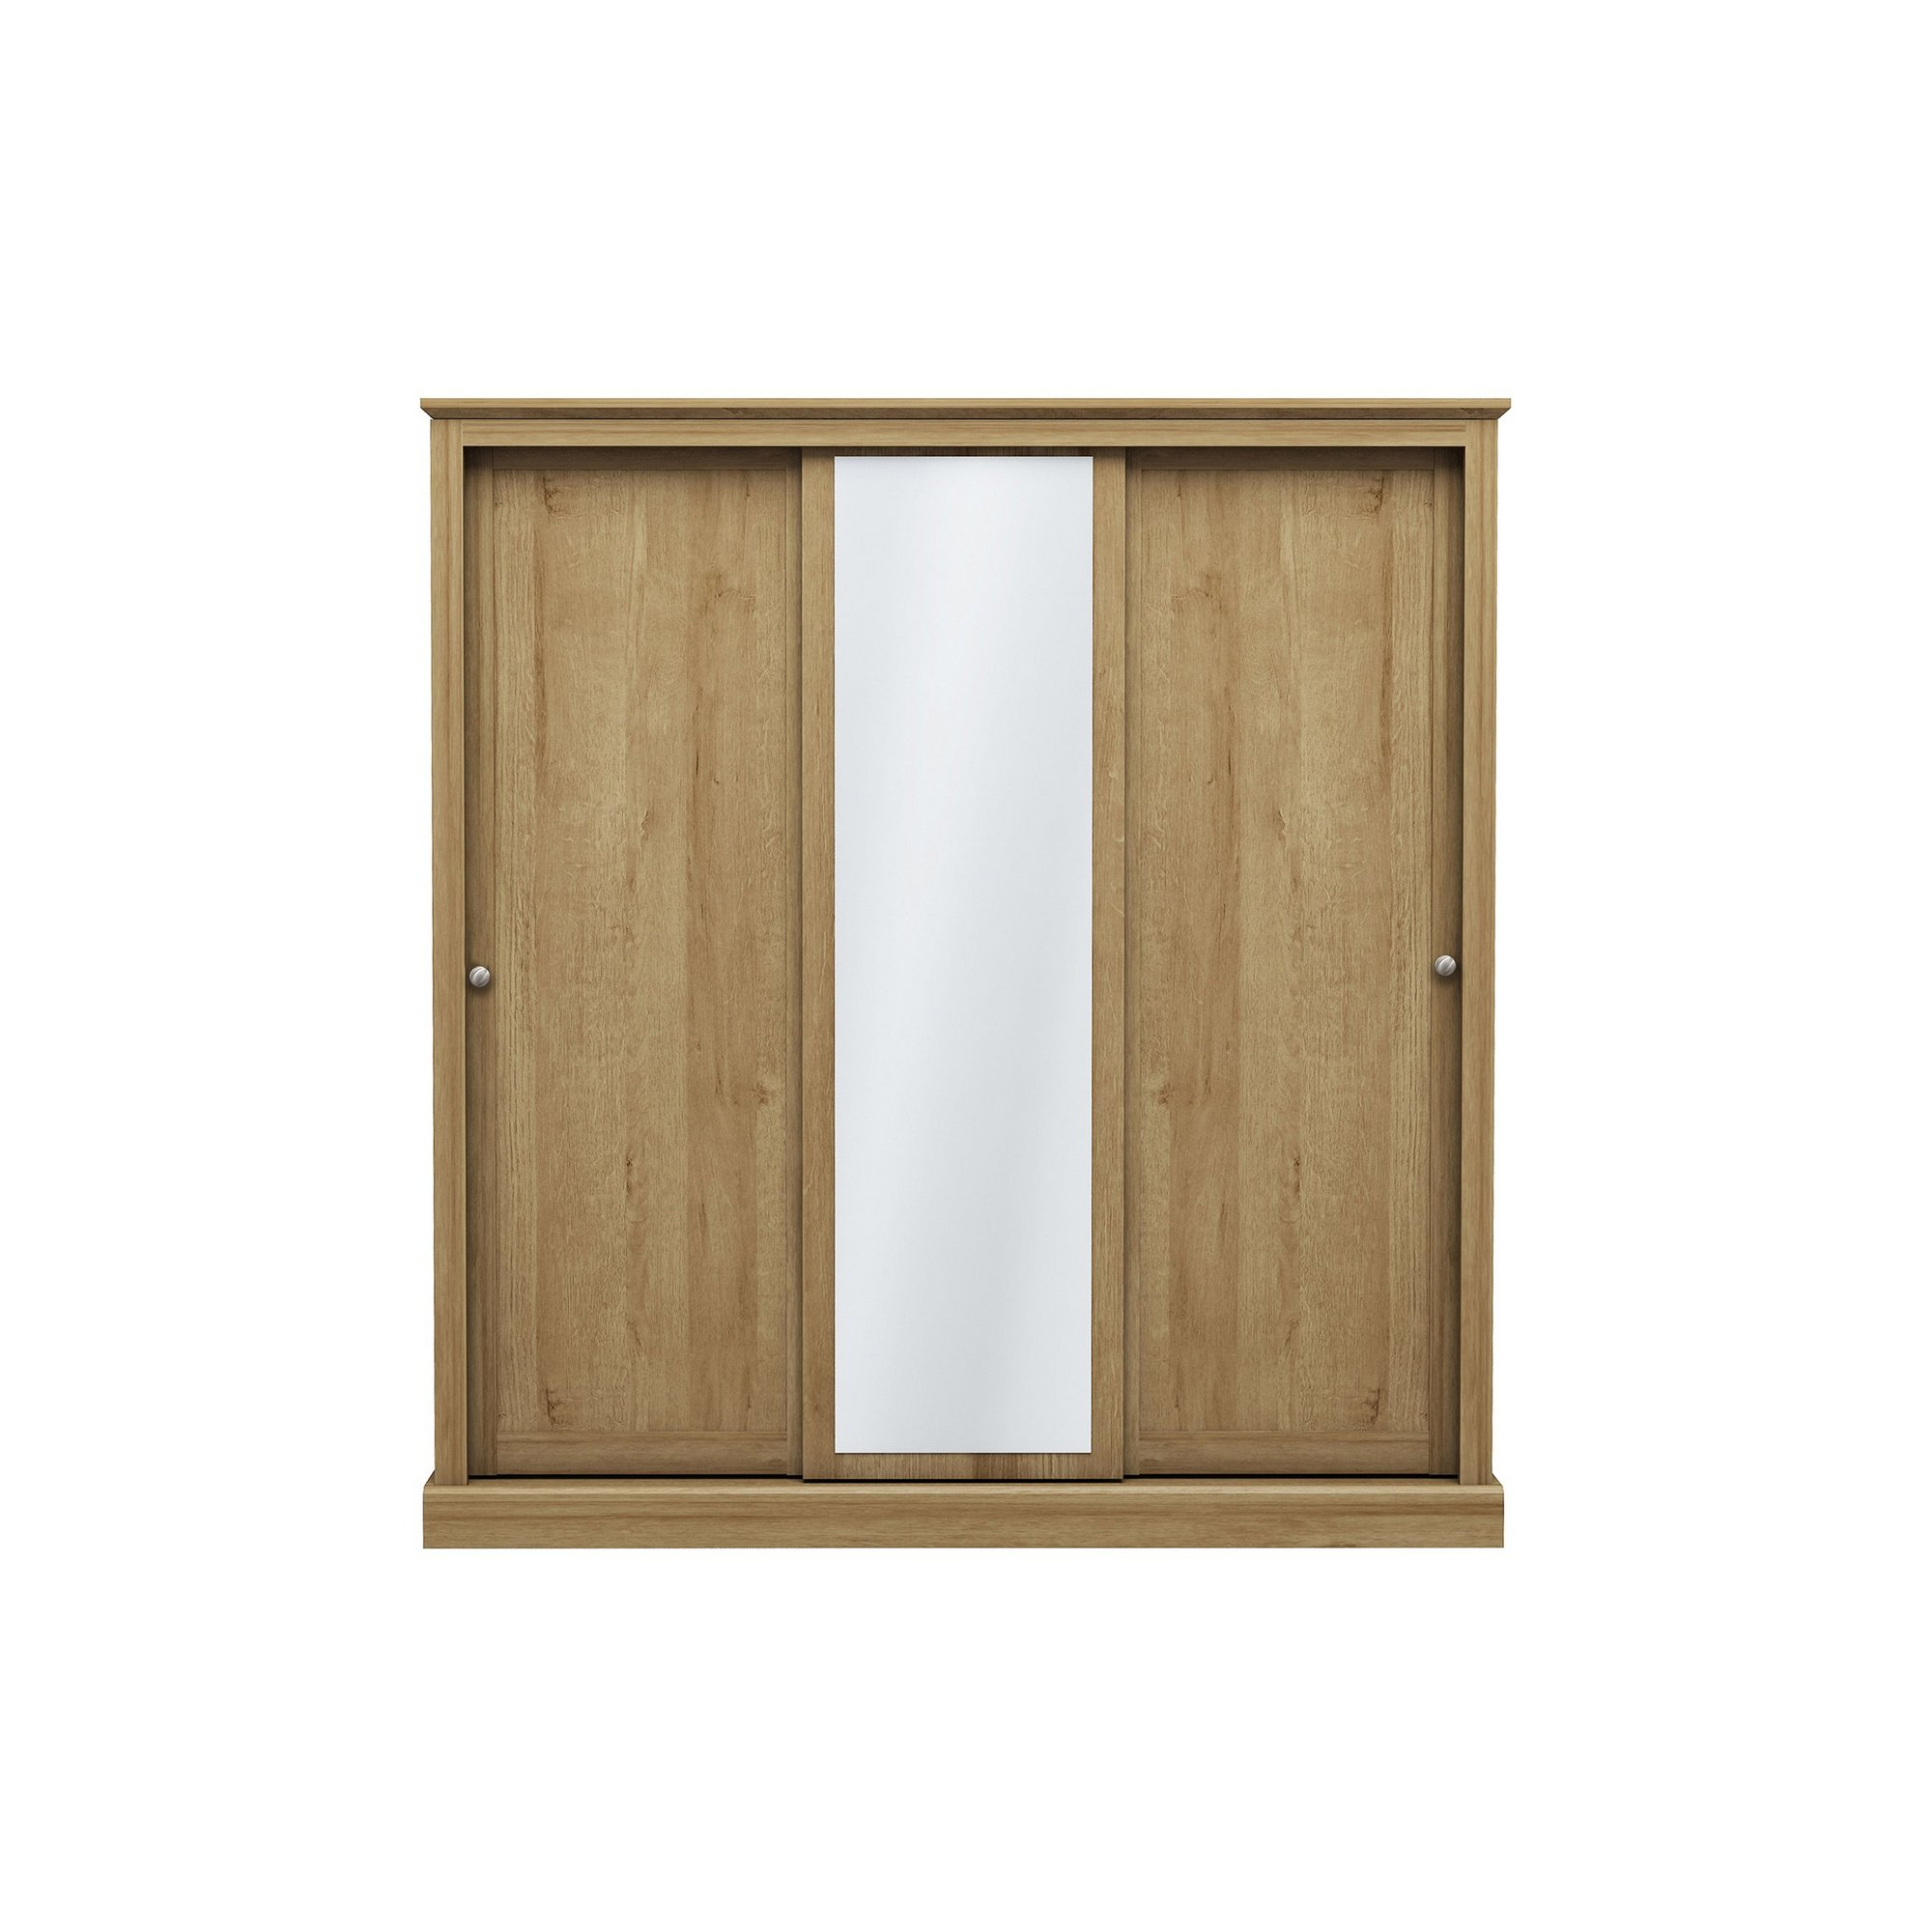 Image of Devon 3 Door Sliding Wardrobe